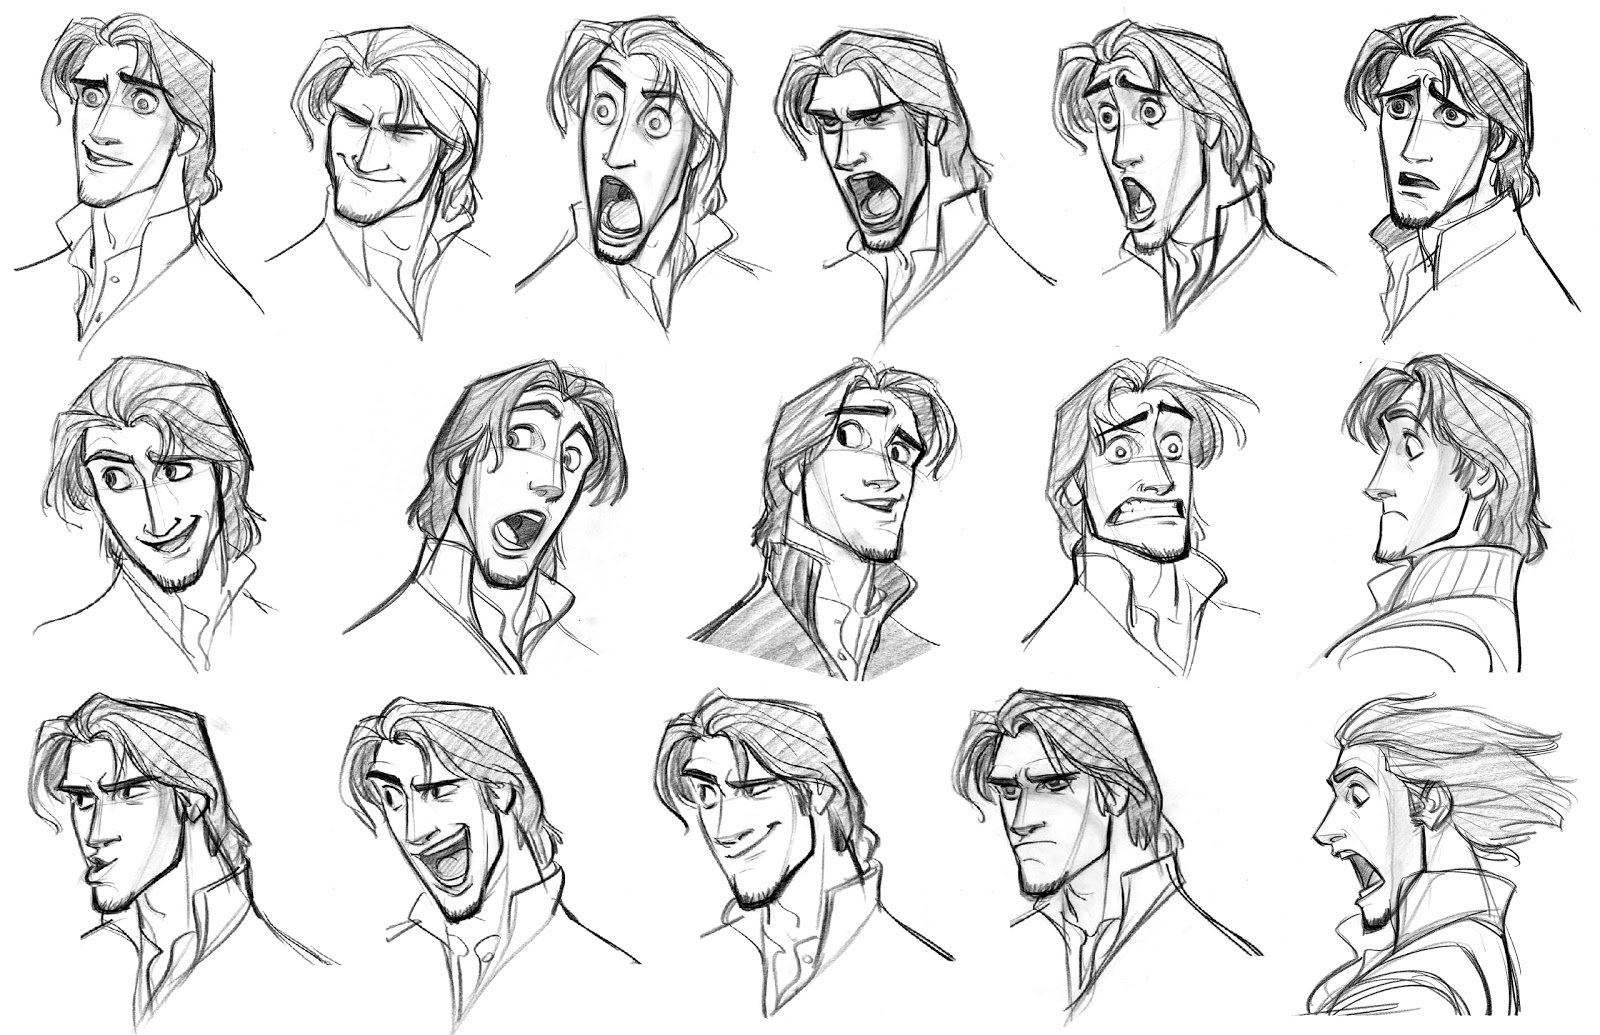 Keep These Expression Sheets In Mind When Doing Your Final Projects